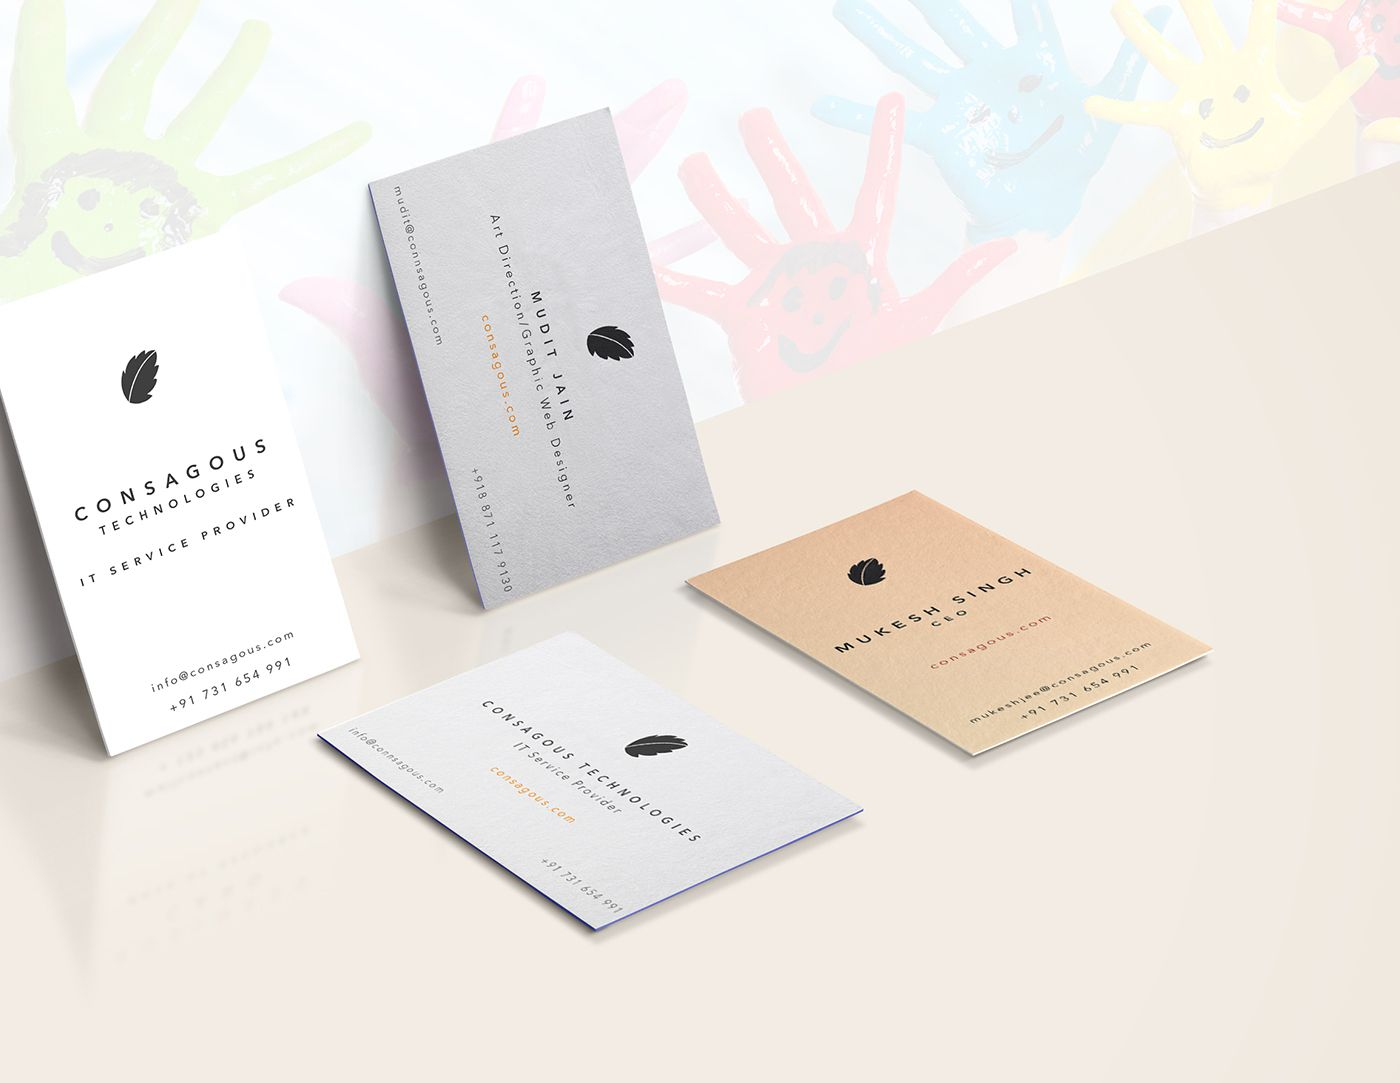 Pin by consagous technology on Consagous Business Card Design ...